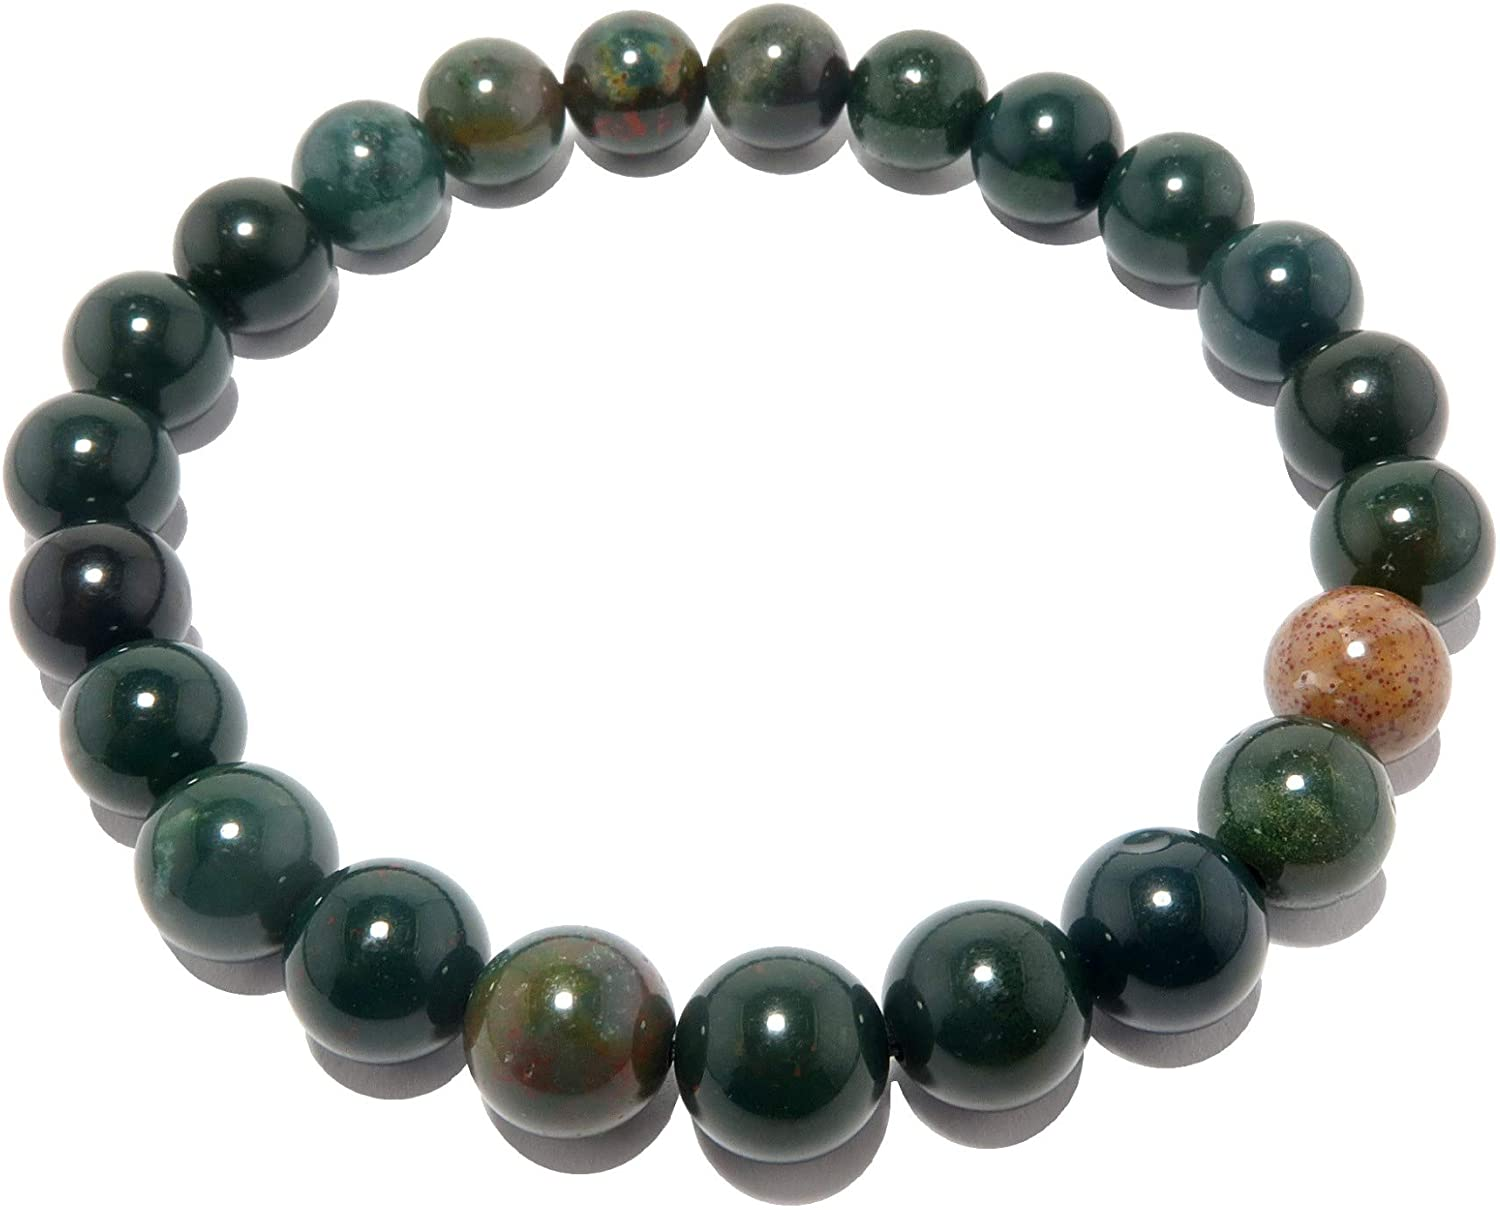 Bloodstone Bracelet 7mm Boutique Stretch Genuine Green Red Round Prayer Meditation Gemstone Crystal Energy B02 (8